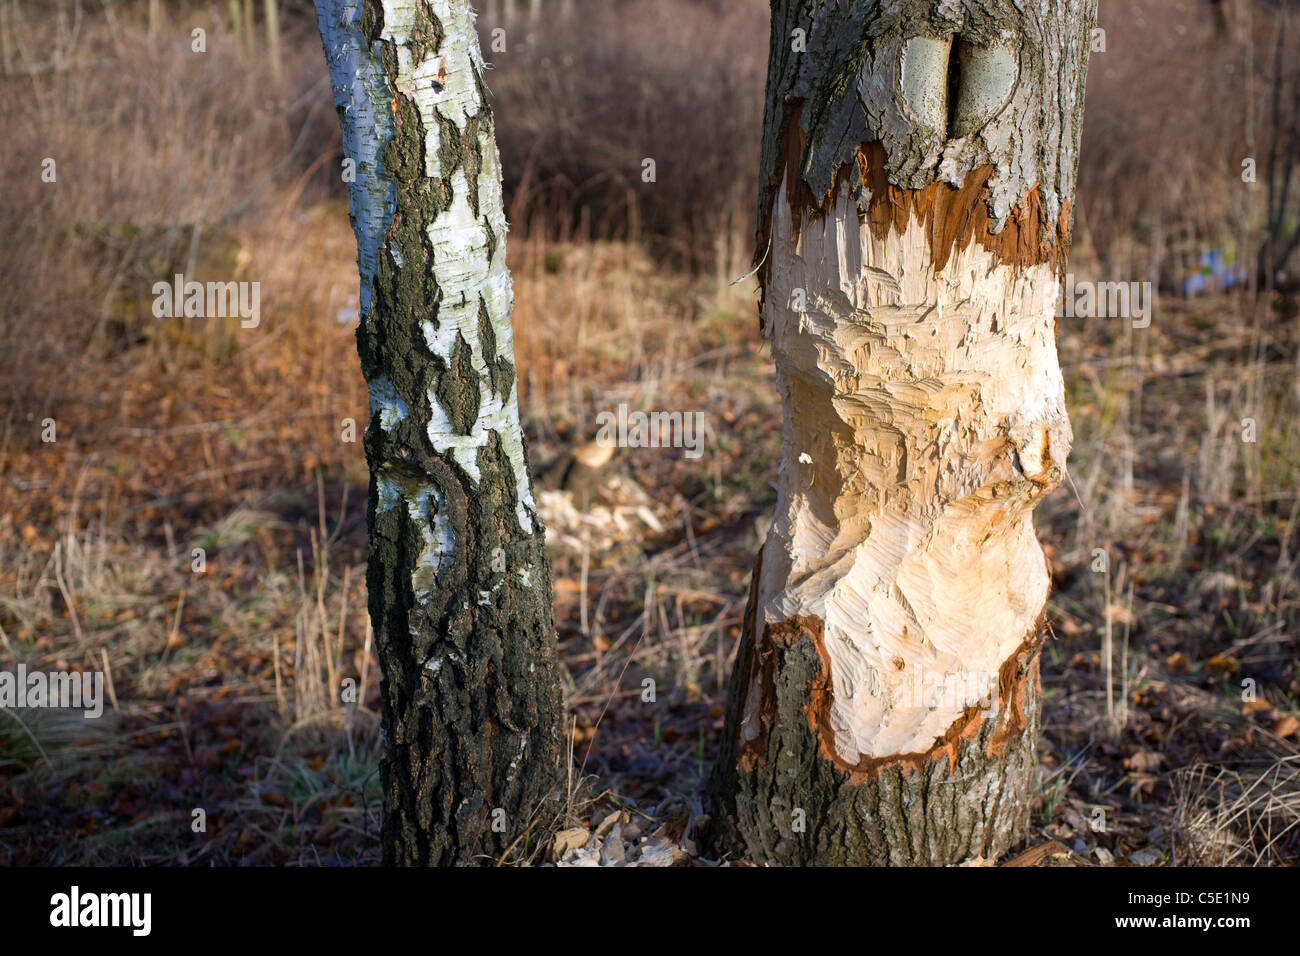 Close-up of damaged birch tree trunks - Stock Image